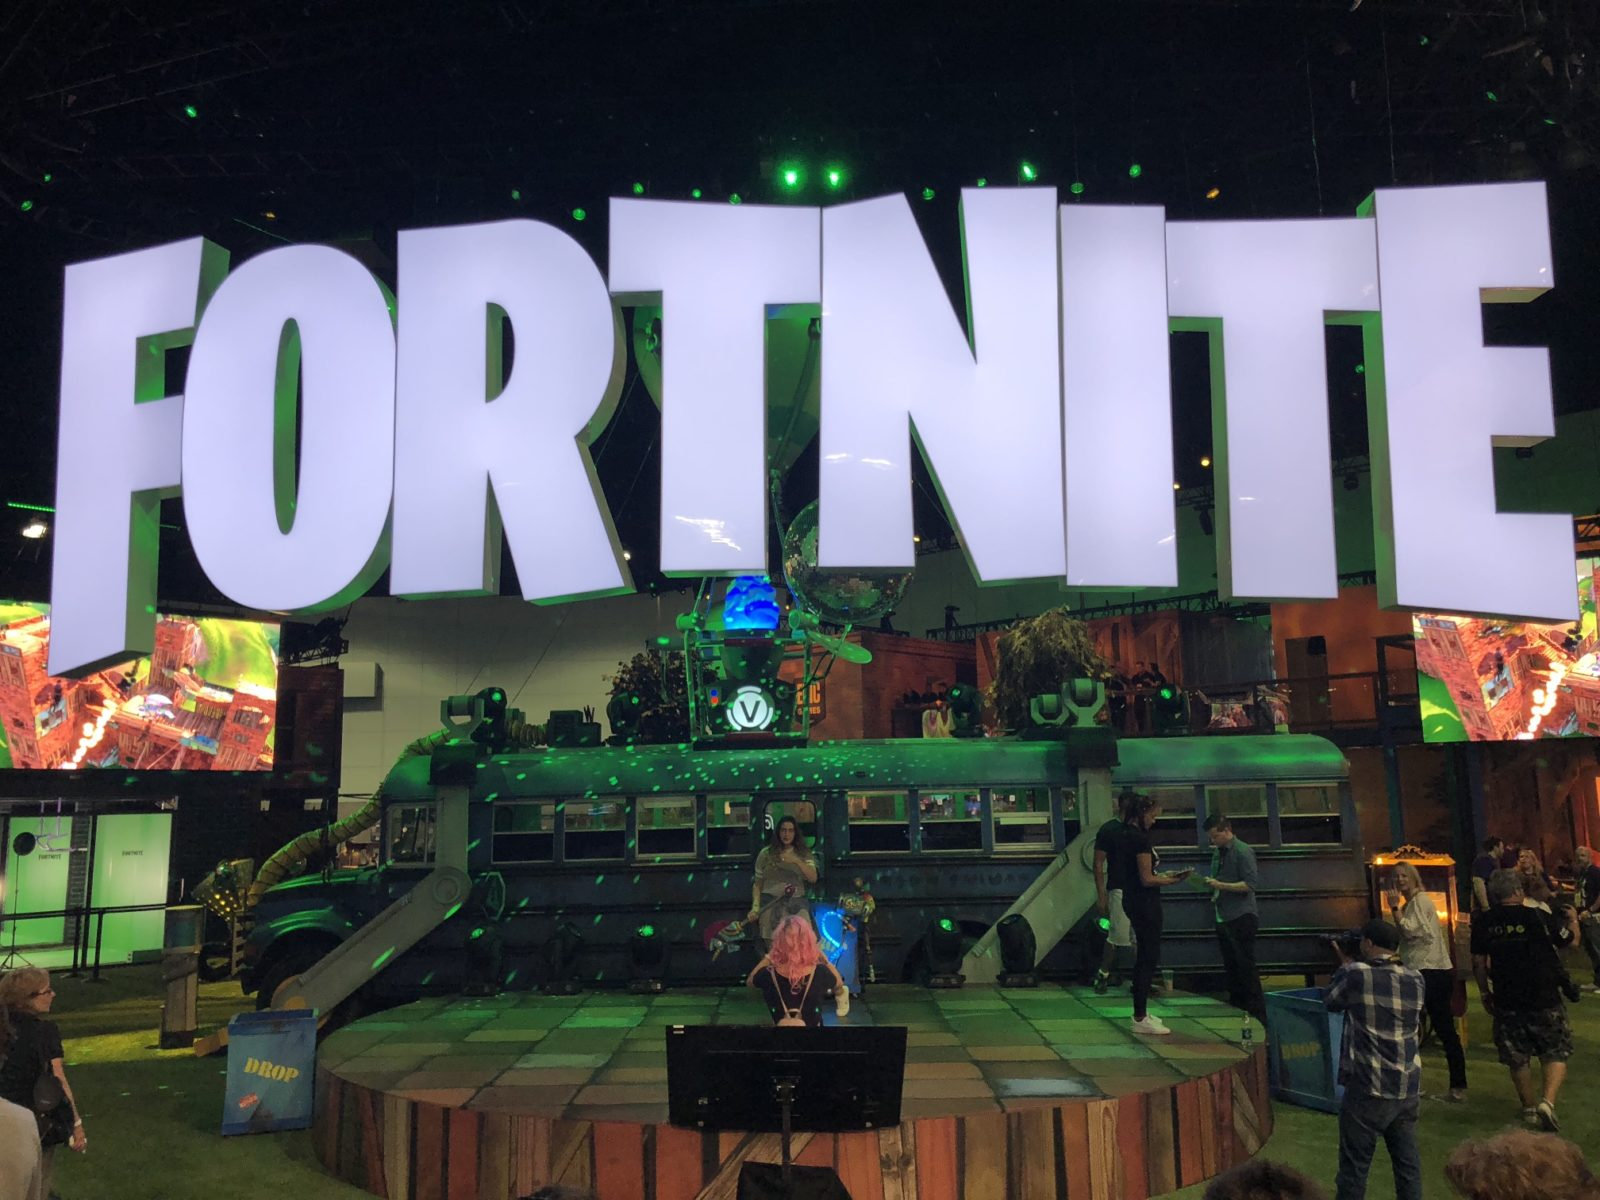 Epic Games Fortnite Booth Display